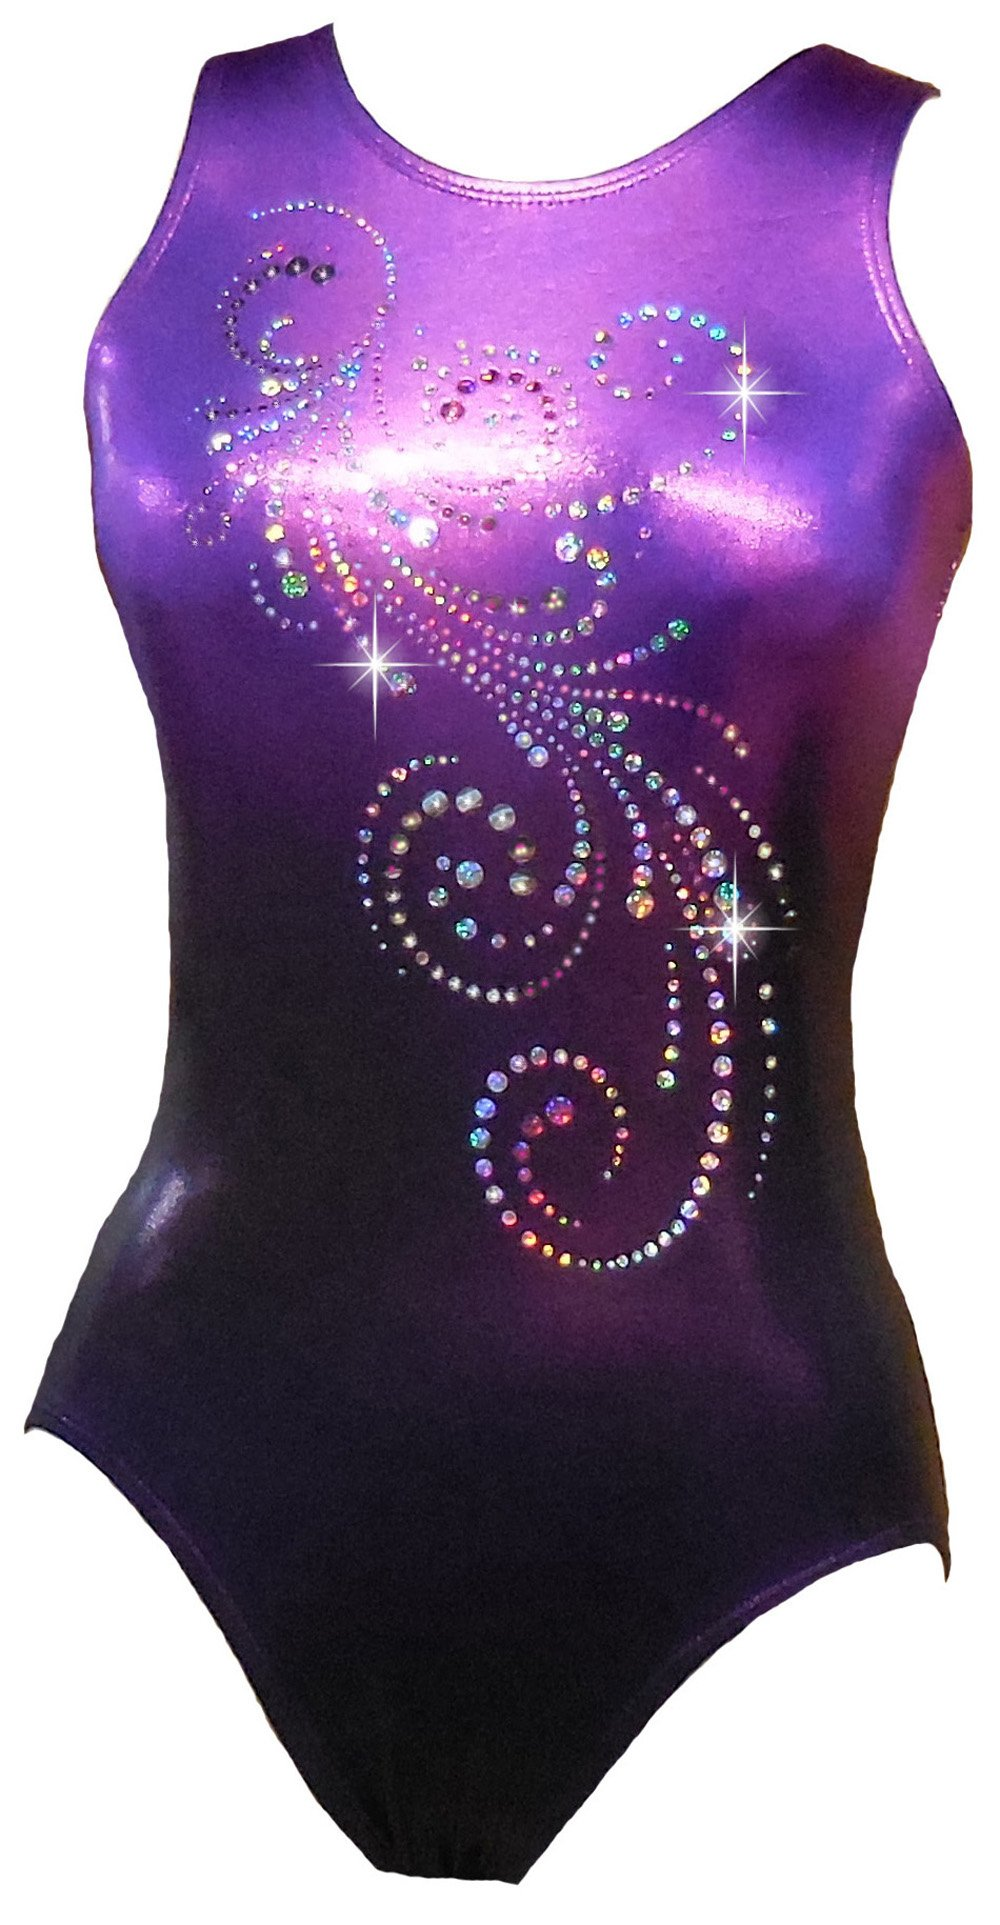 Look-It Activewear Deep Purple Ombre Sparkle Leotard for Gymnastics or Dance girls and women (Child Medium (size 5-7)) by Look-It Activewear